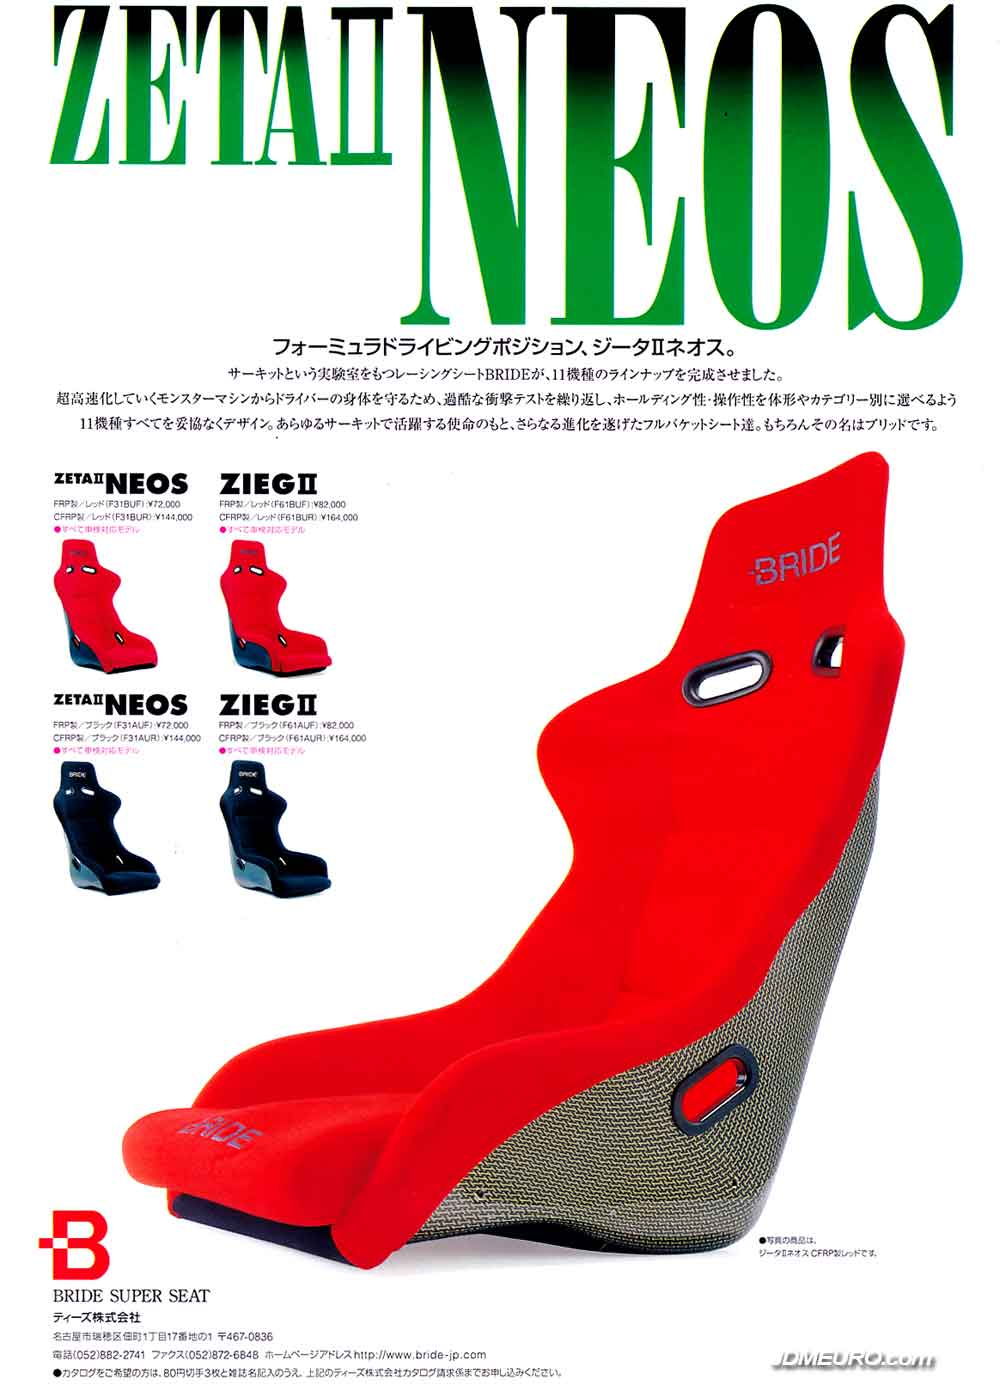 Bride Zeta II Neos Seats in Carbon Kevlar